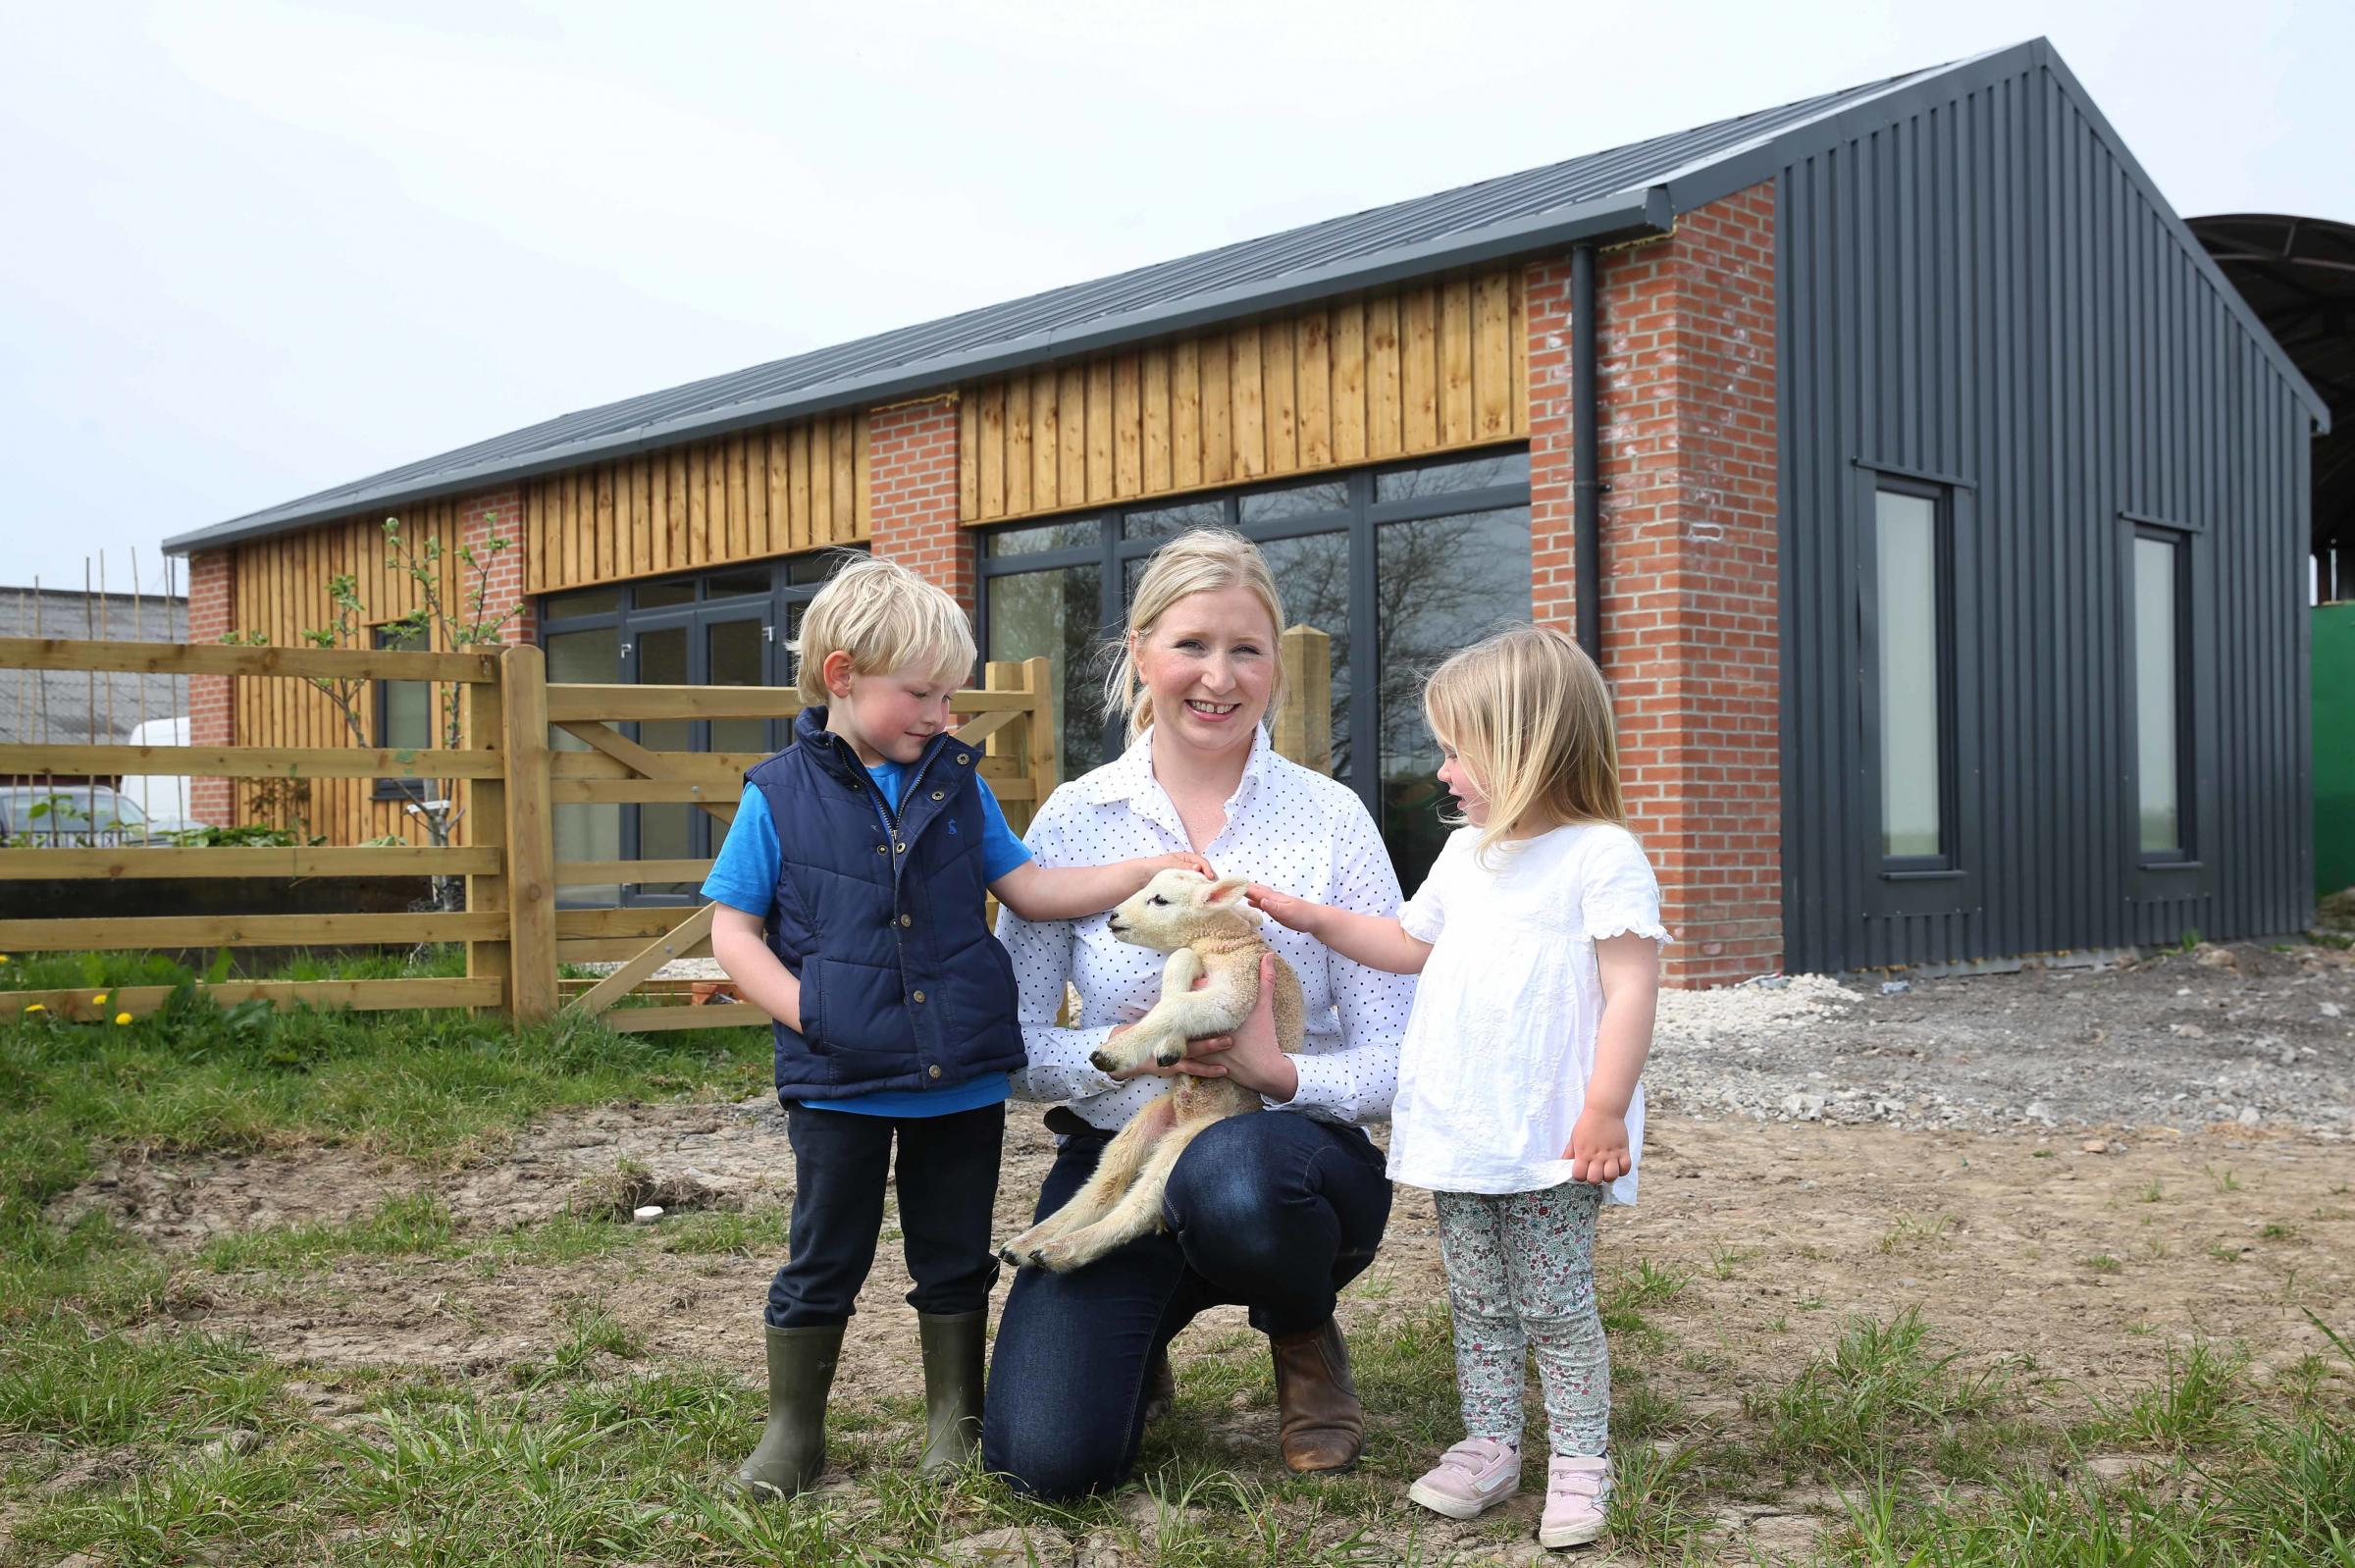 Lucy Atkinson who has set up a children's nursery on her farm at Scorton, pictured with Charlie Whittaker,4 and Charlotte Atkinson, 3. Picture: Richard Doughty Photography